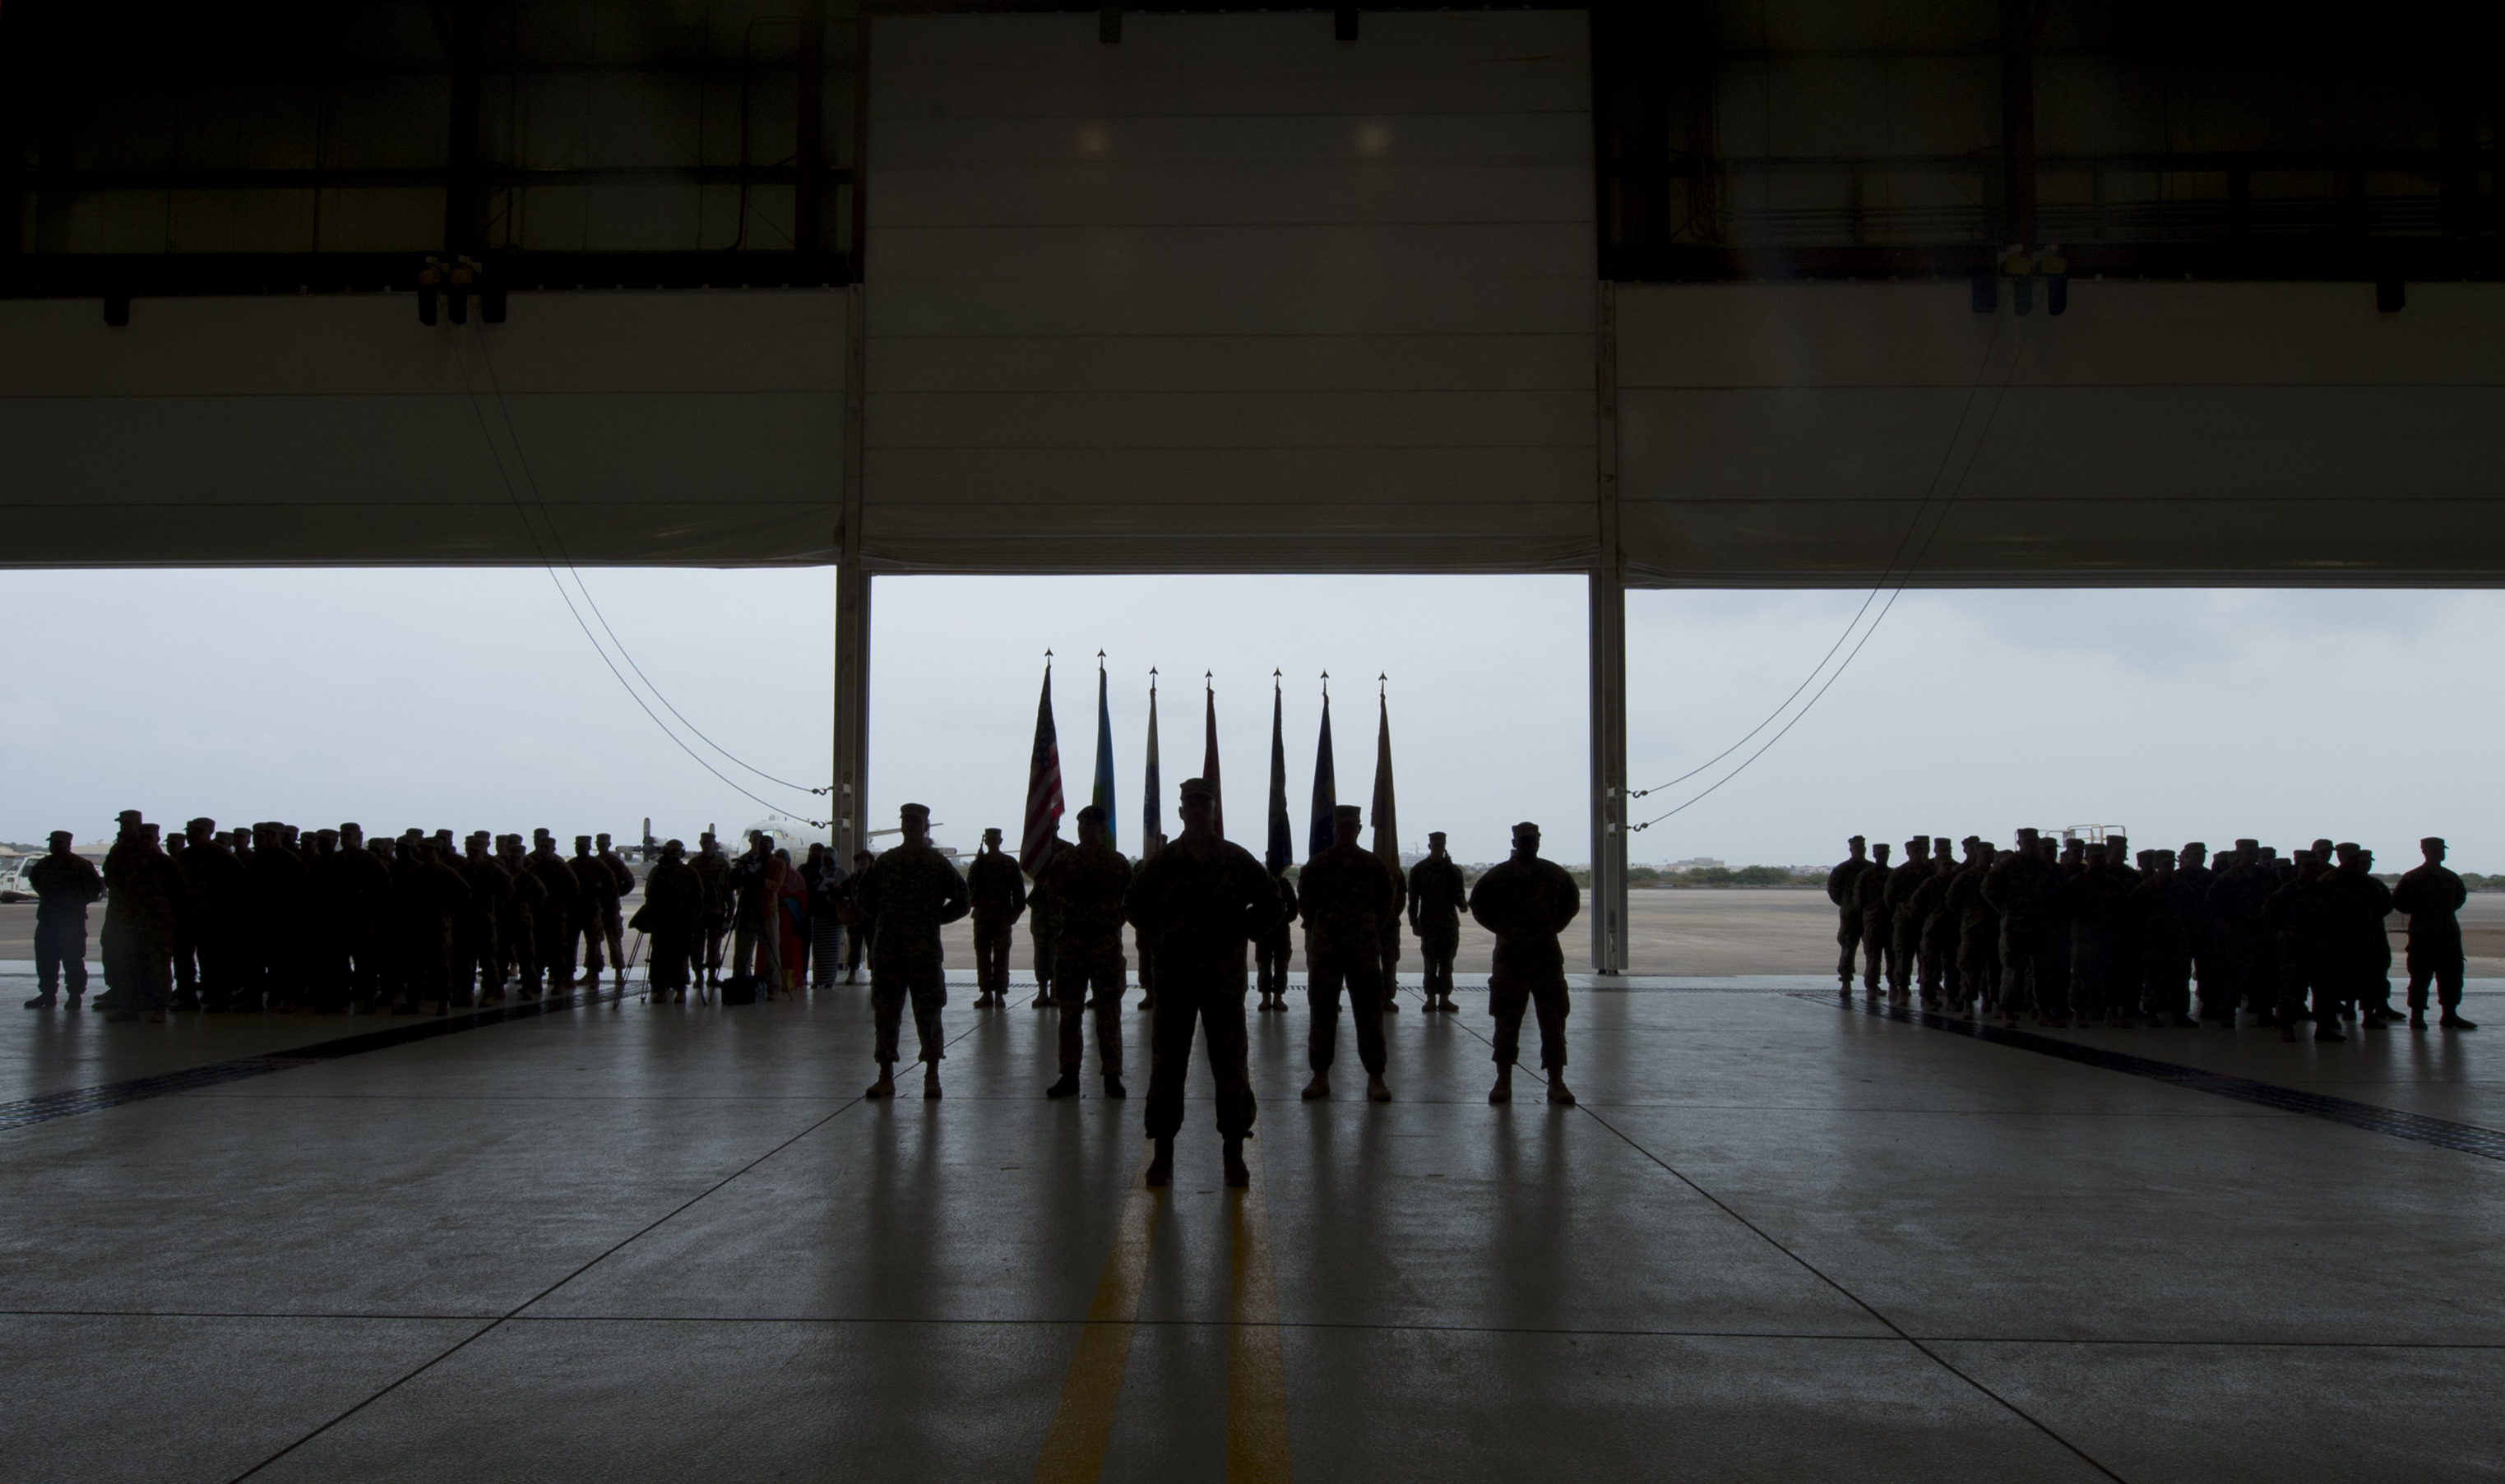 Soldiers, Marines, Sailors, and Airmen stand in formation during the Combined Joint Task Force-Horn of Africa change of command ceremony April 13, 2016, at Camp Lemonnier, Djibouti. The formation represented the joint services that U.S. Army Brig. Gen. Kurt Sonntag, CJTF-HOA commander, will be responsible for after assuming command. (U.S. Air Force photo by Staff Sgt. Eric Summers Jr.)